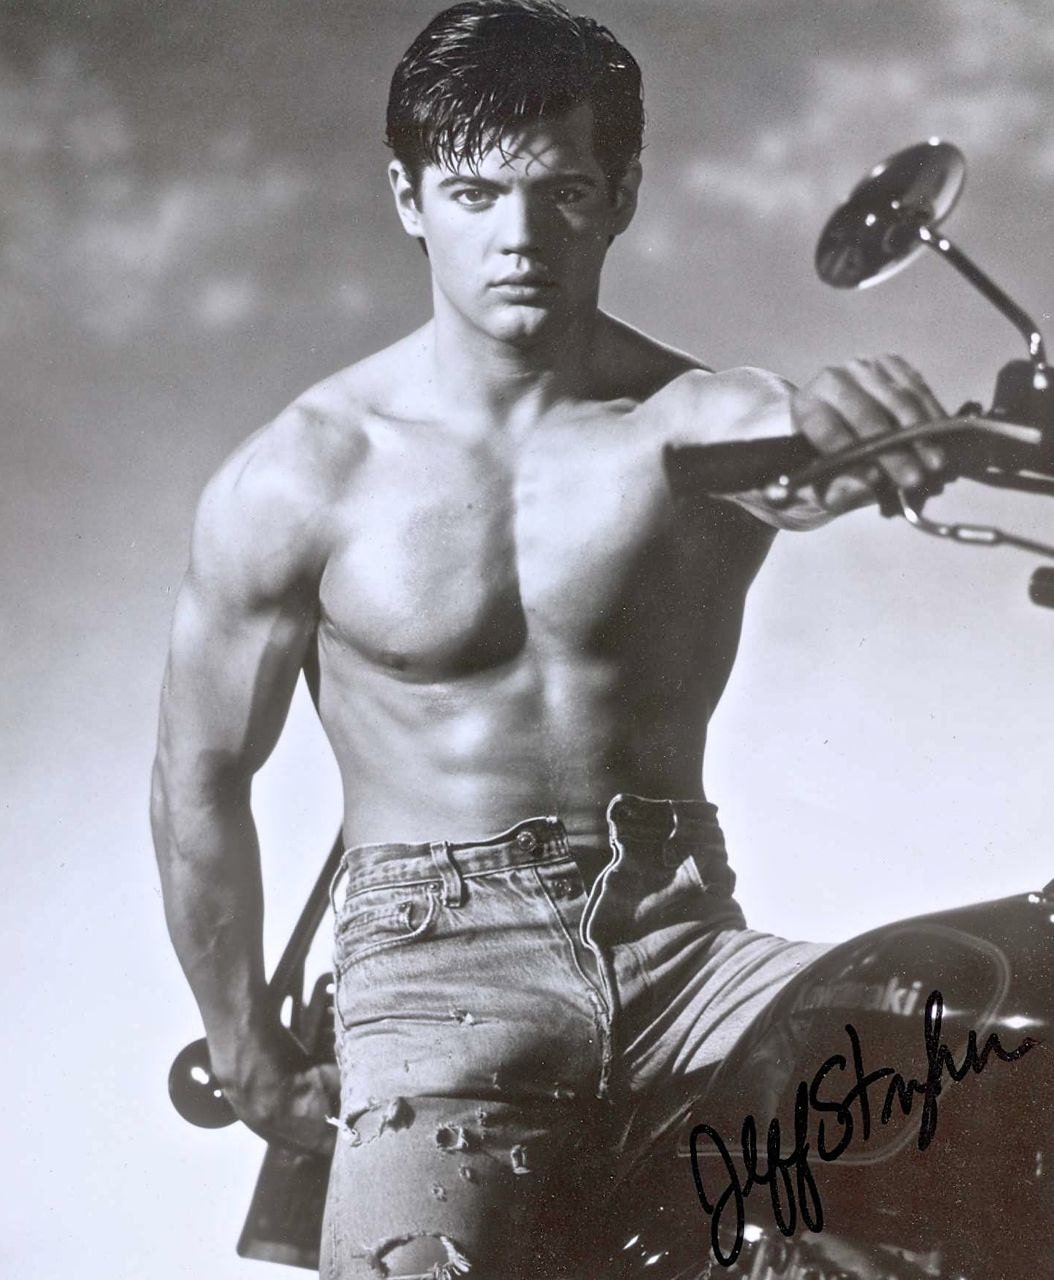 Mature Gay Interest Jeff Stryker Autographed 8 X 10 Black